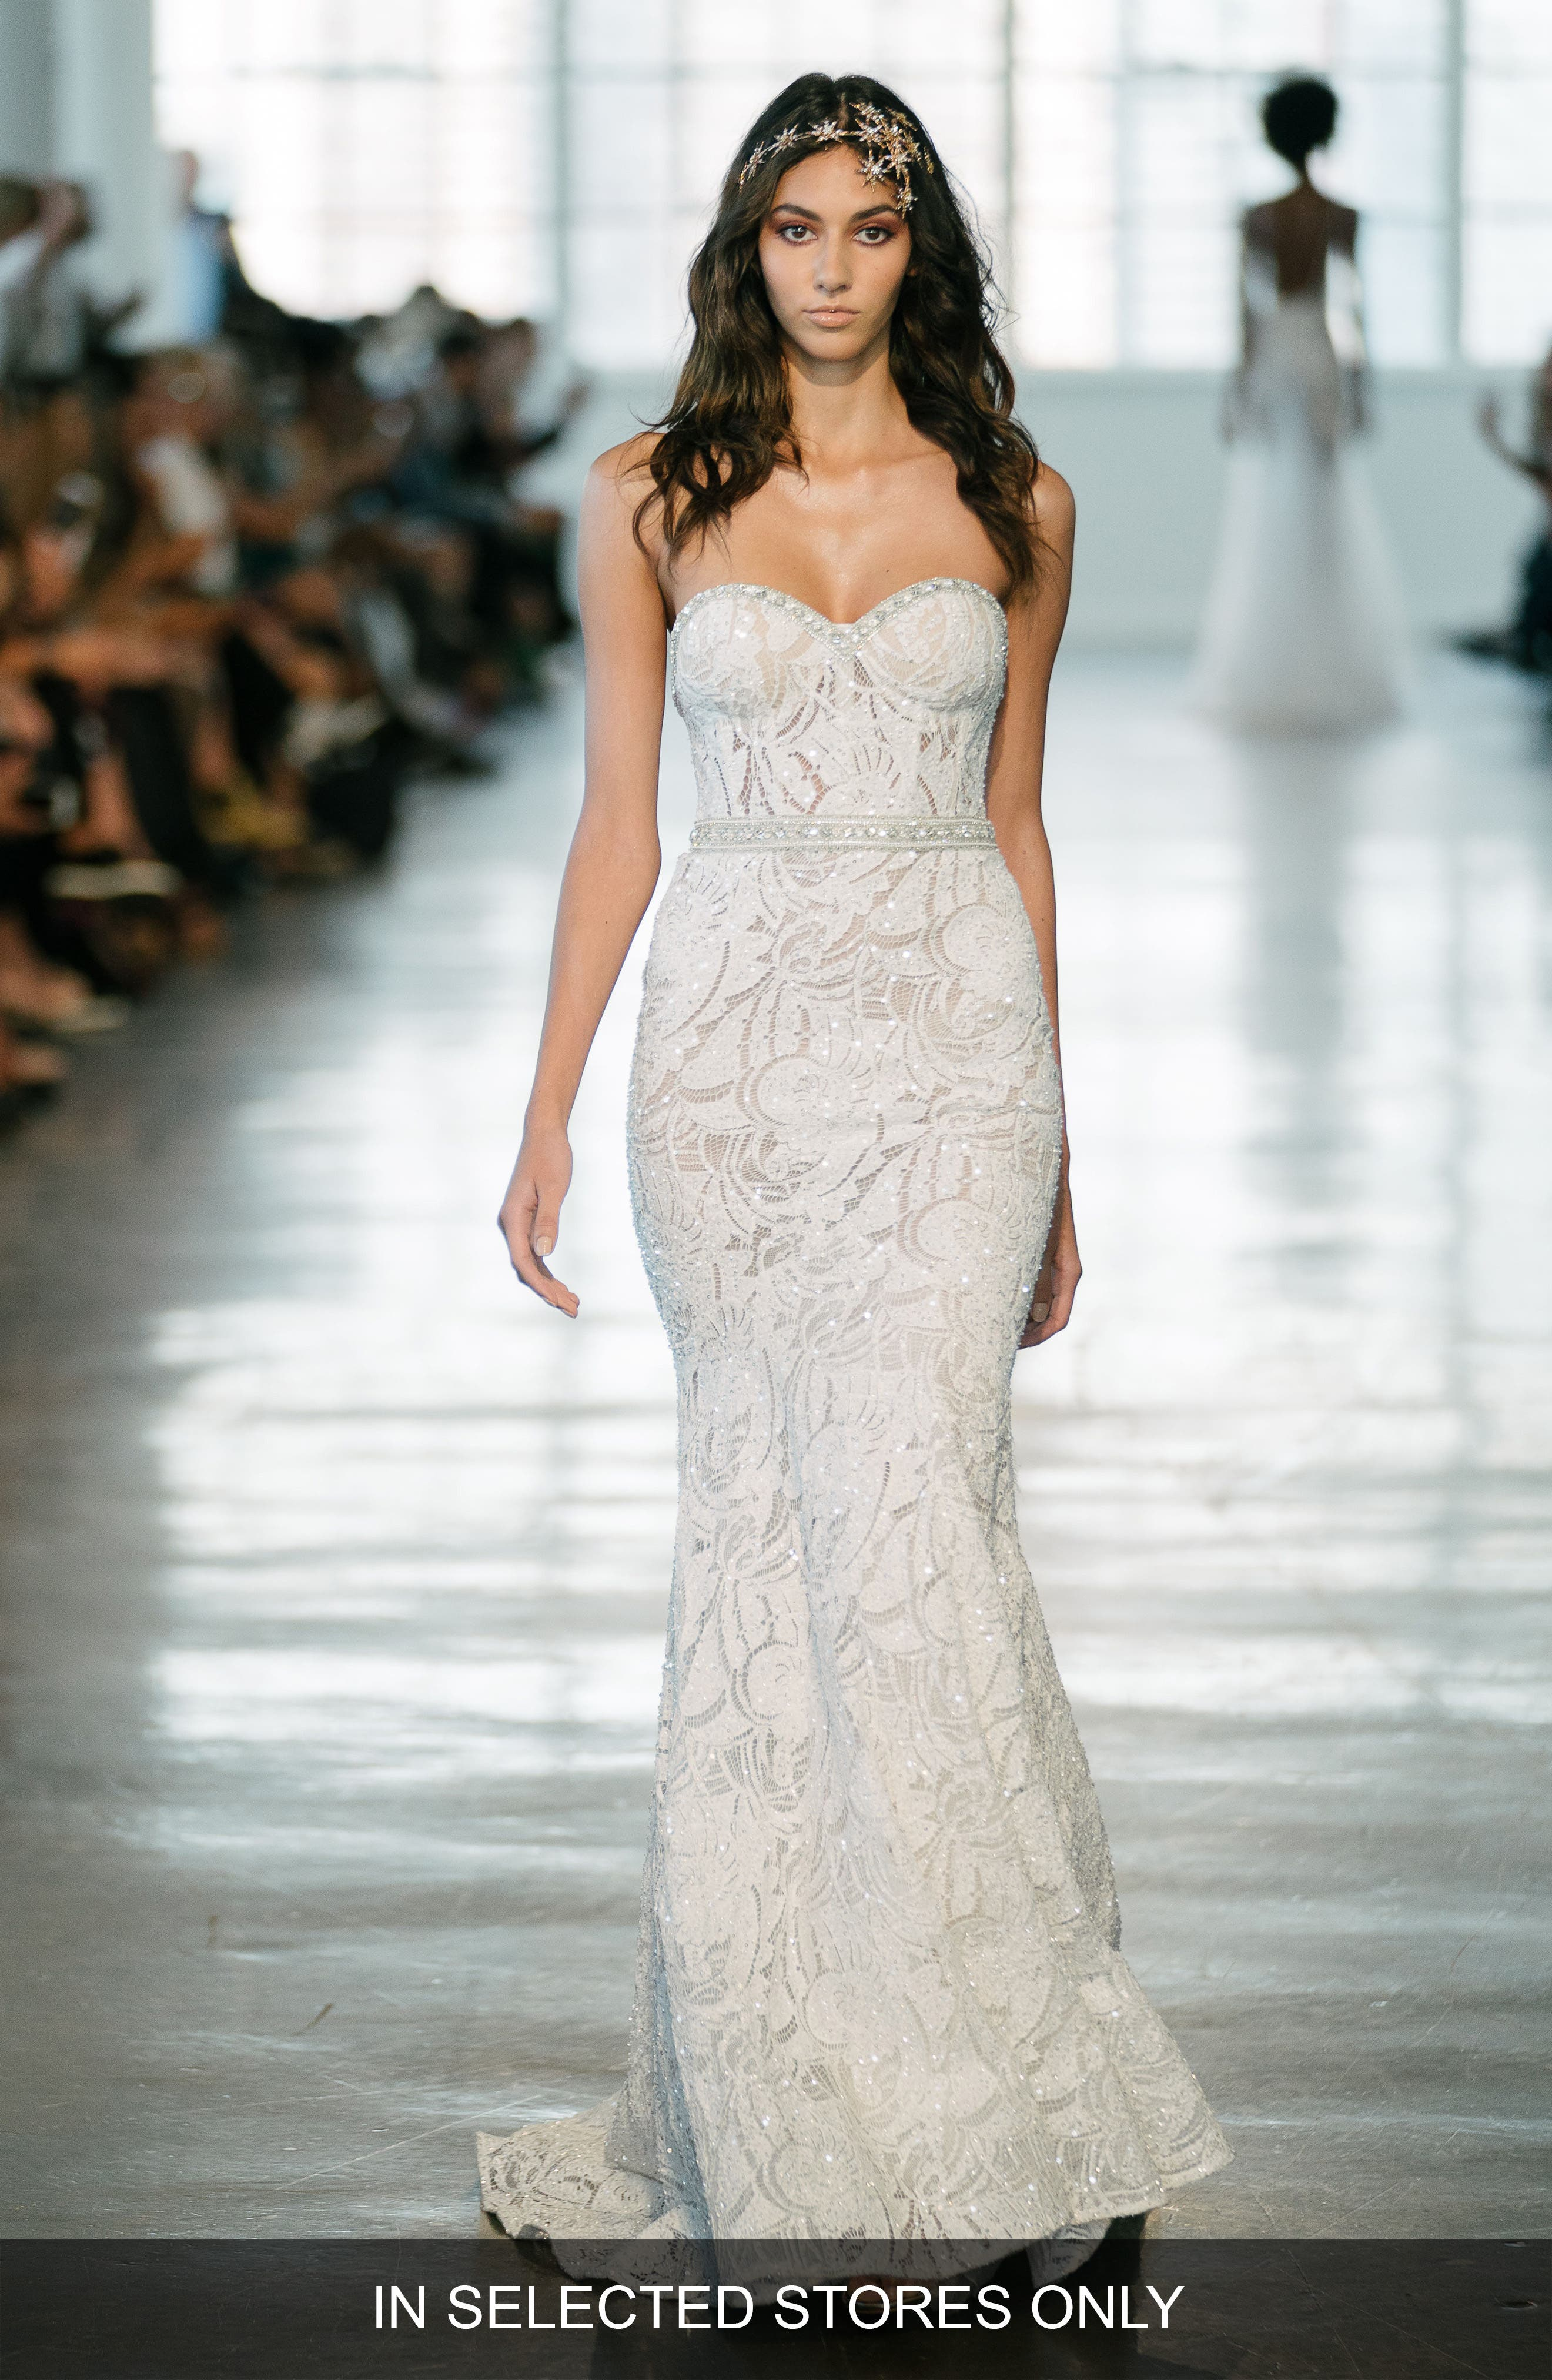 Main Image - Berta Crystal Embellished Strapless Lace Trumpet Gown